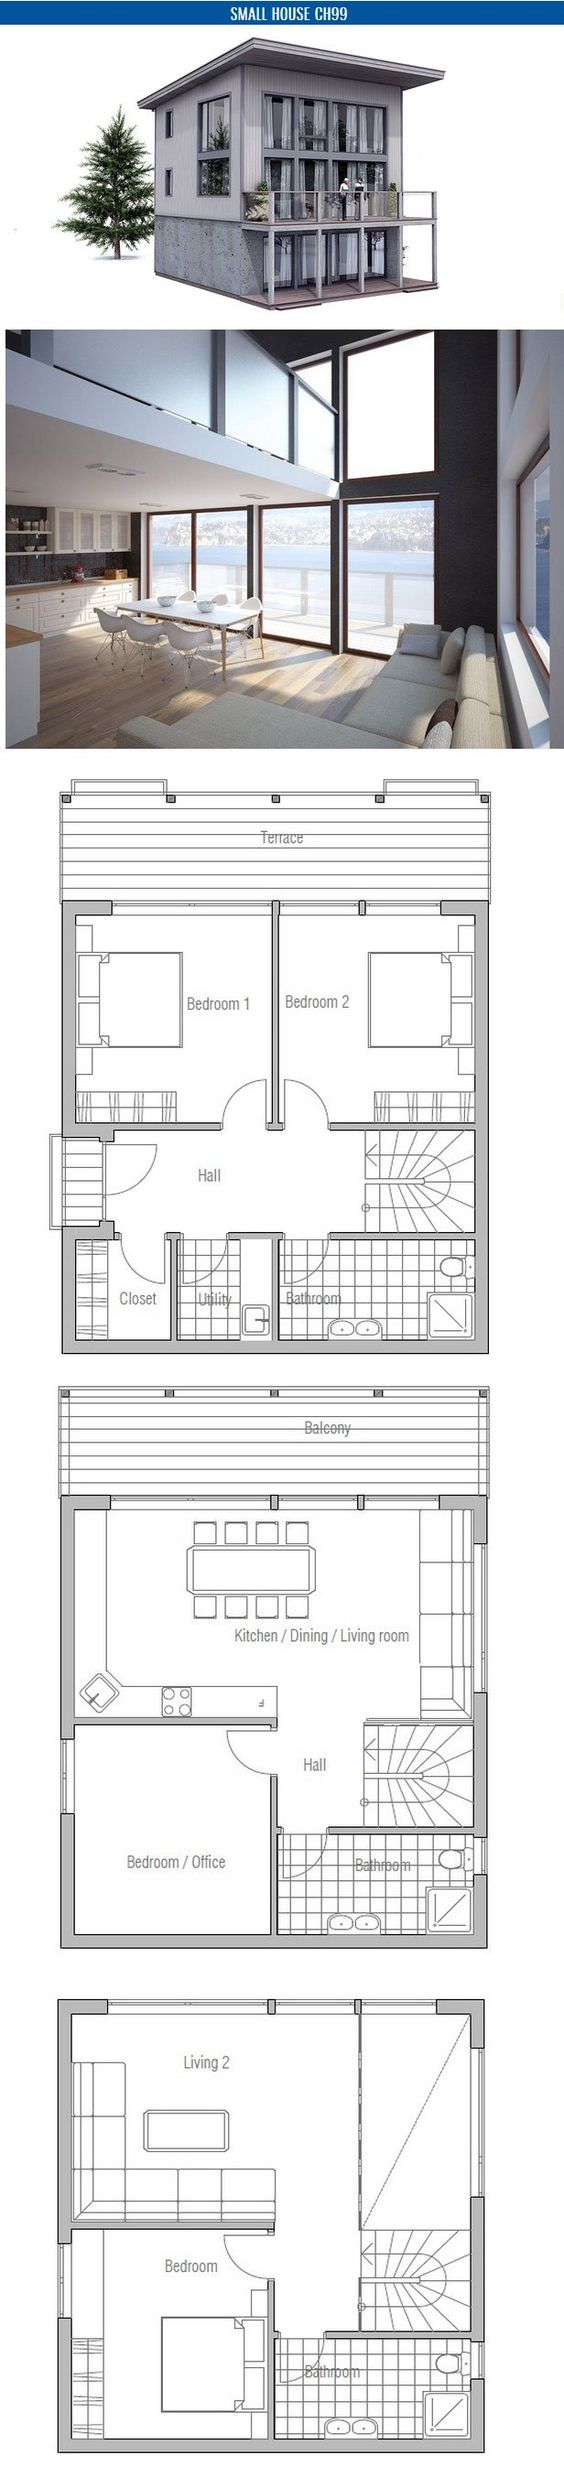 Small house plan   four bedrooms  Simple lines and shapes    Three floor small house plan   four bedrooms  Ideal to small home plan to small lot  Simple lines and shapes  affordable building budget  Perfect small